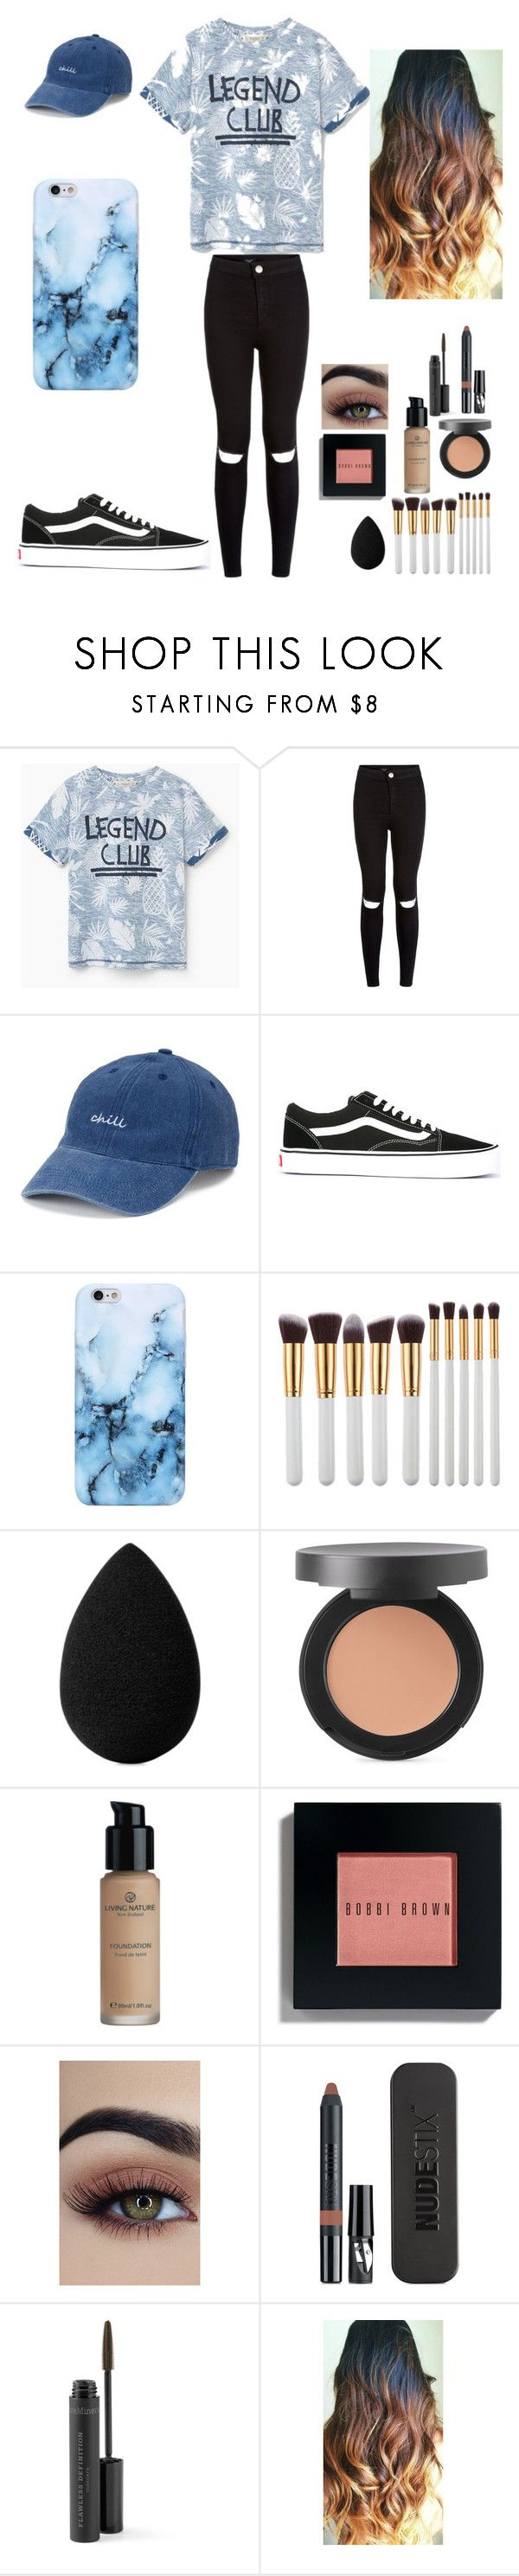 """You Will Remember Me"" by look-in-the-clouds ❤ liked on Polyvore featuring New Look, SO, Vans, My Makeup Brush Set, beautyblender, Bare Escentuals, Bobbi Brown Cosmetics and Nudestix"